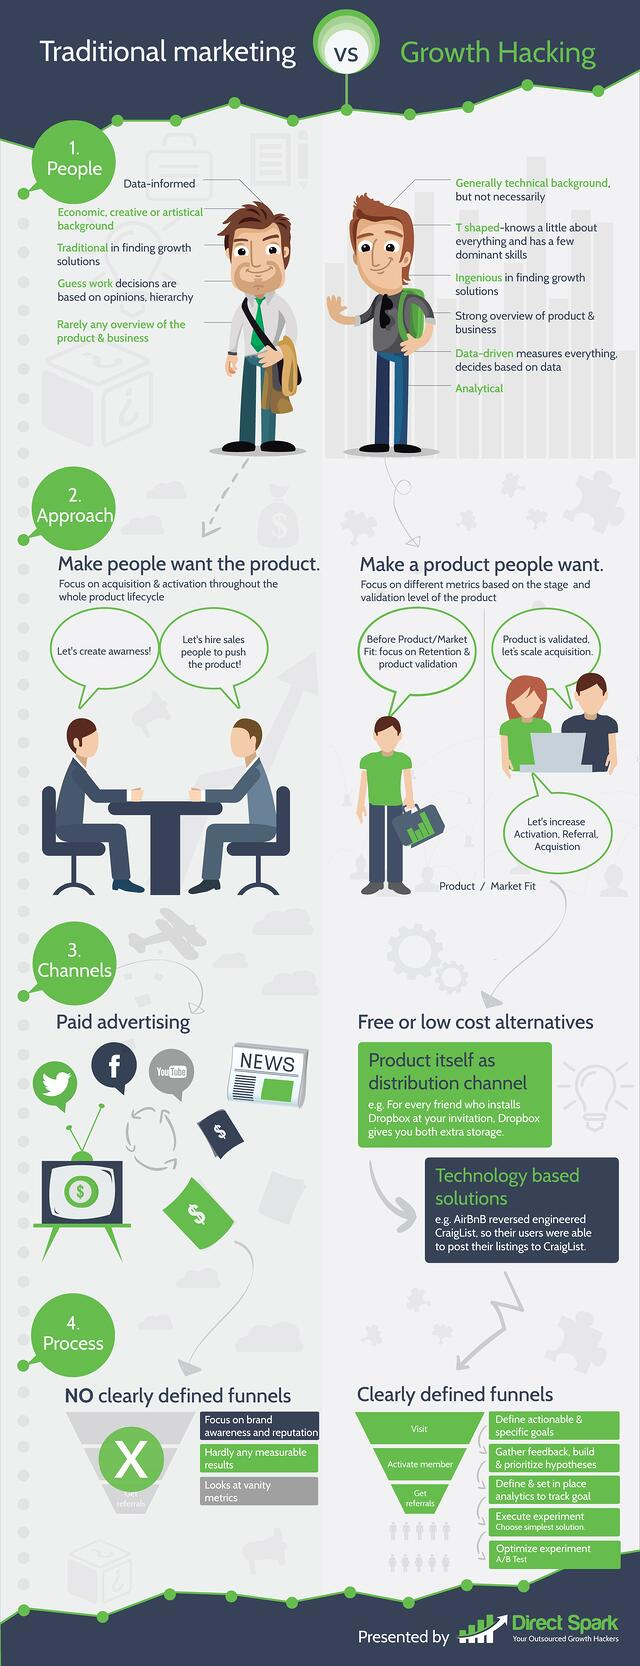 traditional marketing vs growth hacking (infographic)